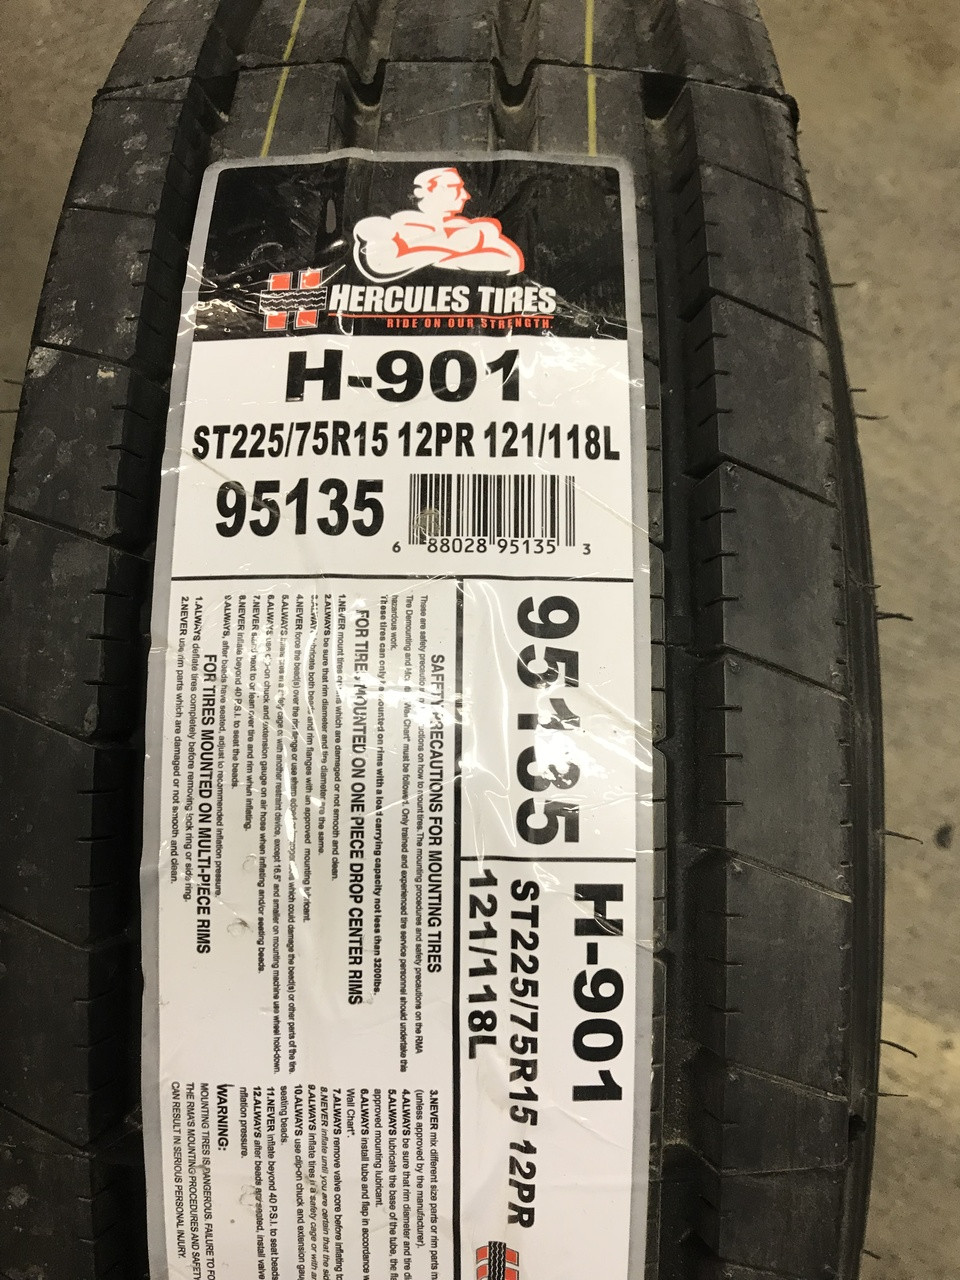 New Tire 225 75 15 Hercules H-901 All Steel ST Trailer 12 Ply ST225/75R15 118L ATDST